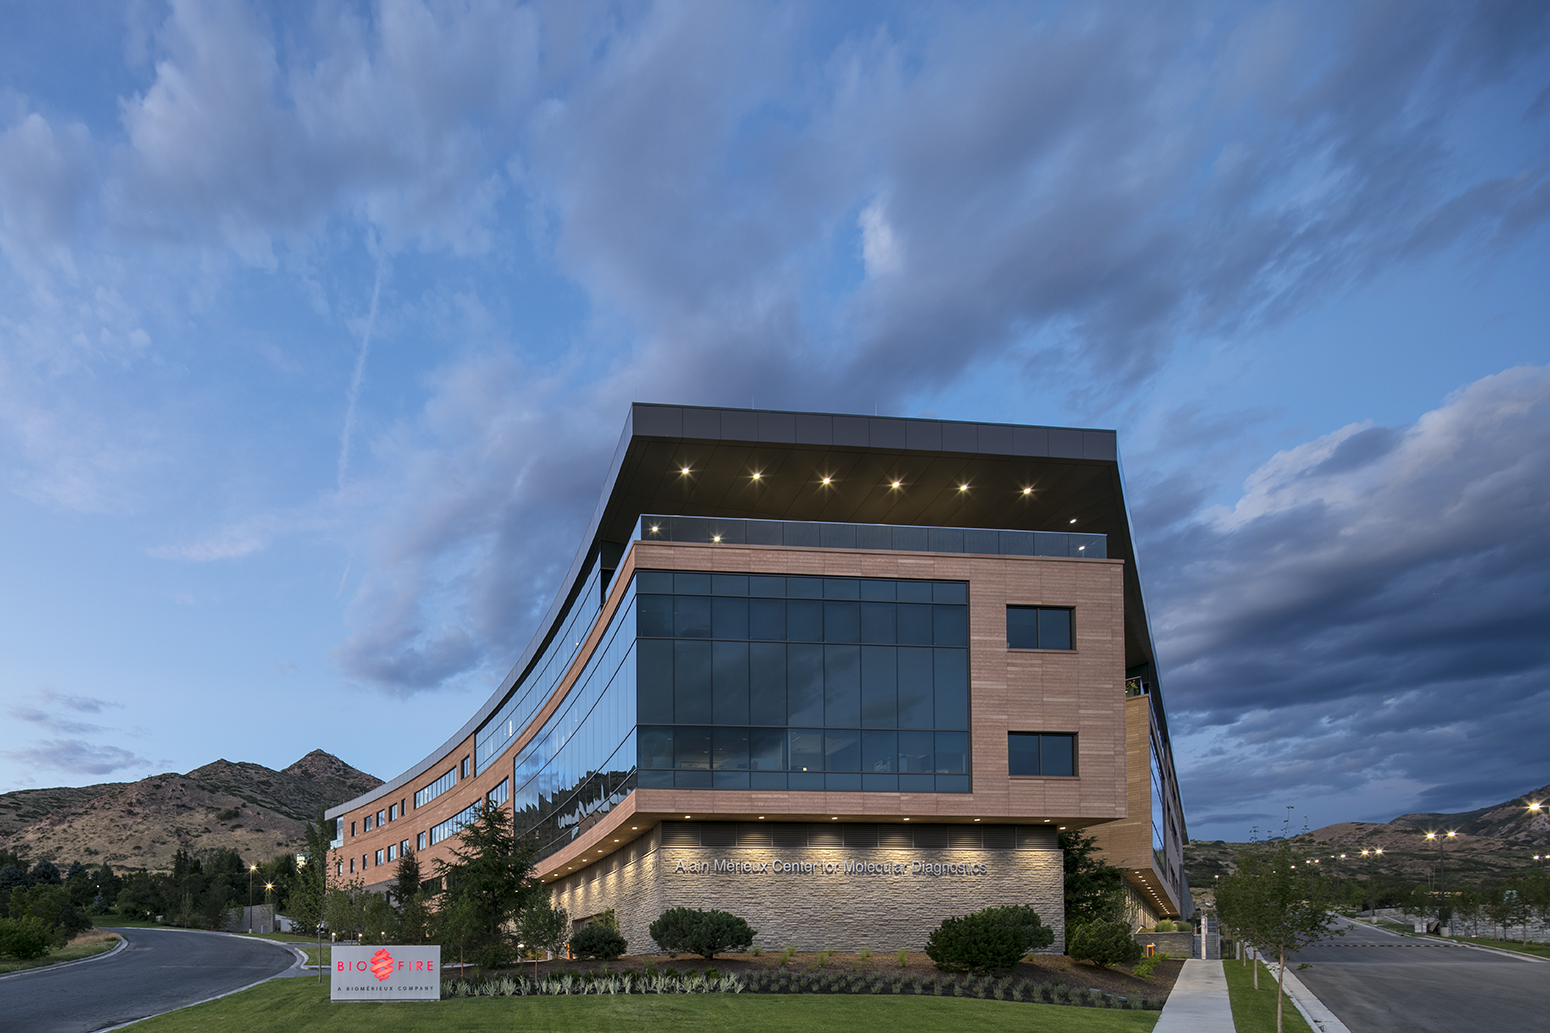 Exterior, architectural photograph of a modern biotech building under blue skies at dusk. The building is triangular in shape with a concave wall. The exterior is brick and glass and has an overhung roofline. on the bottom left is the Bio Fire signage.